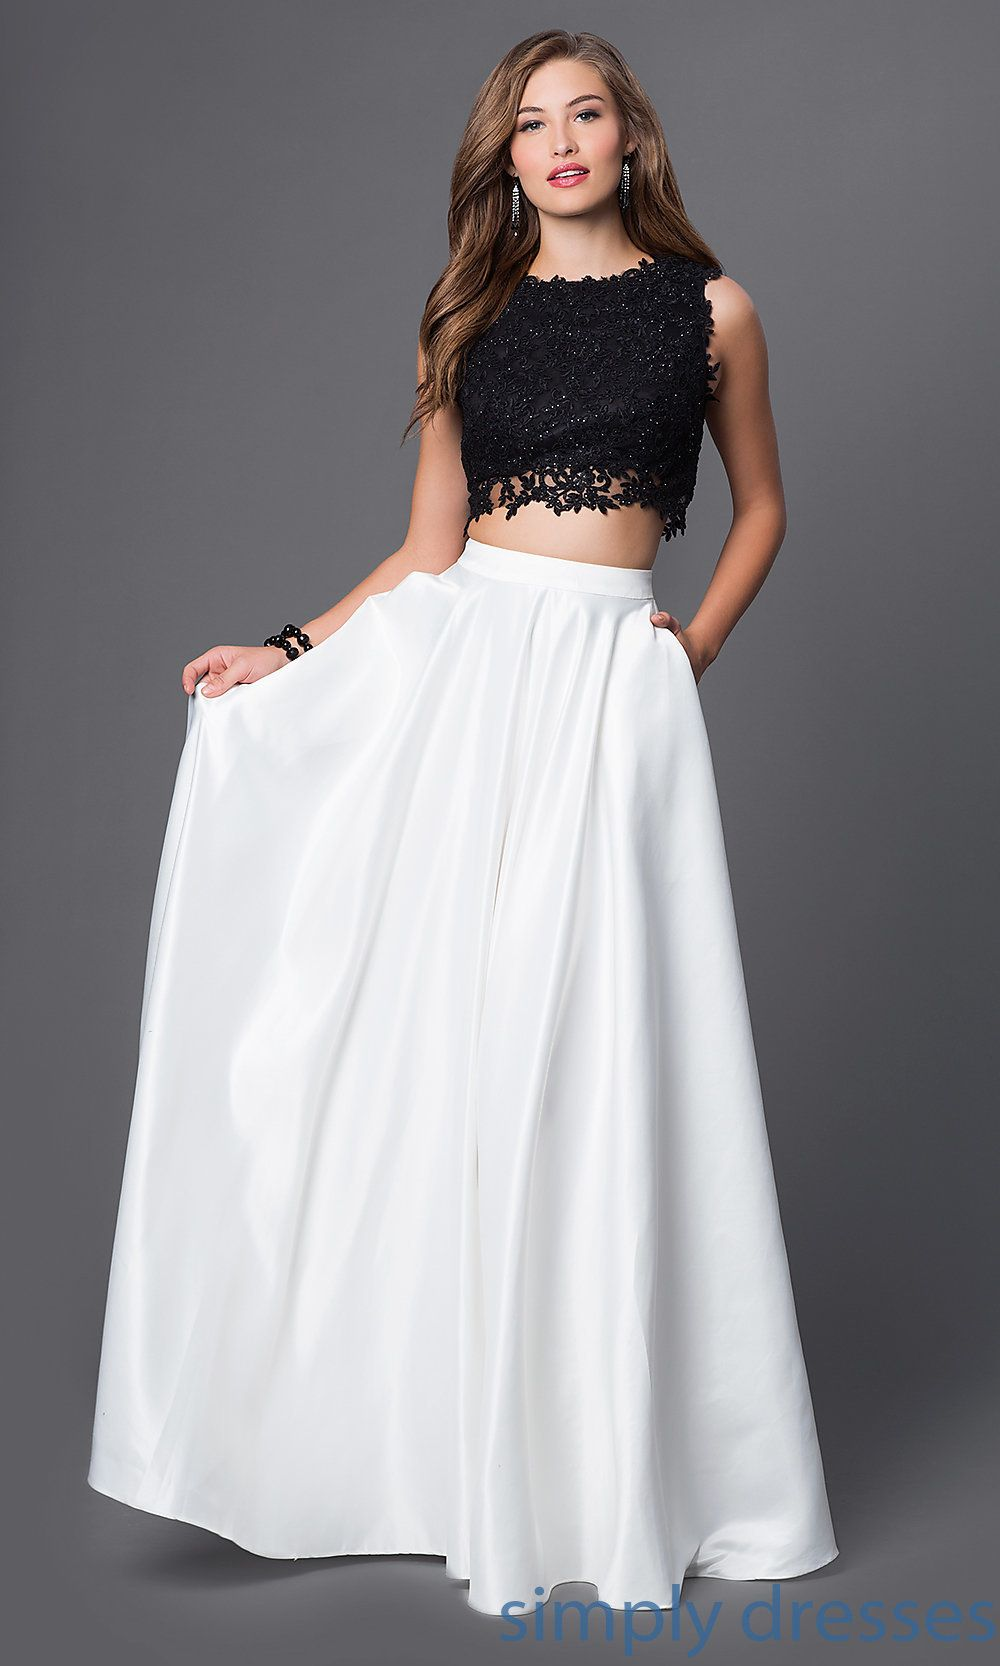 4a5012ad2ed Shop two-piece prom dresses and ball gowns with lace tops at Simply  Dresses. Pageant dresses and wedding-guest dresses.